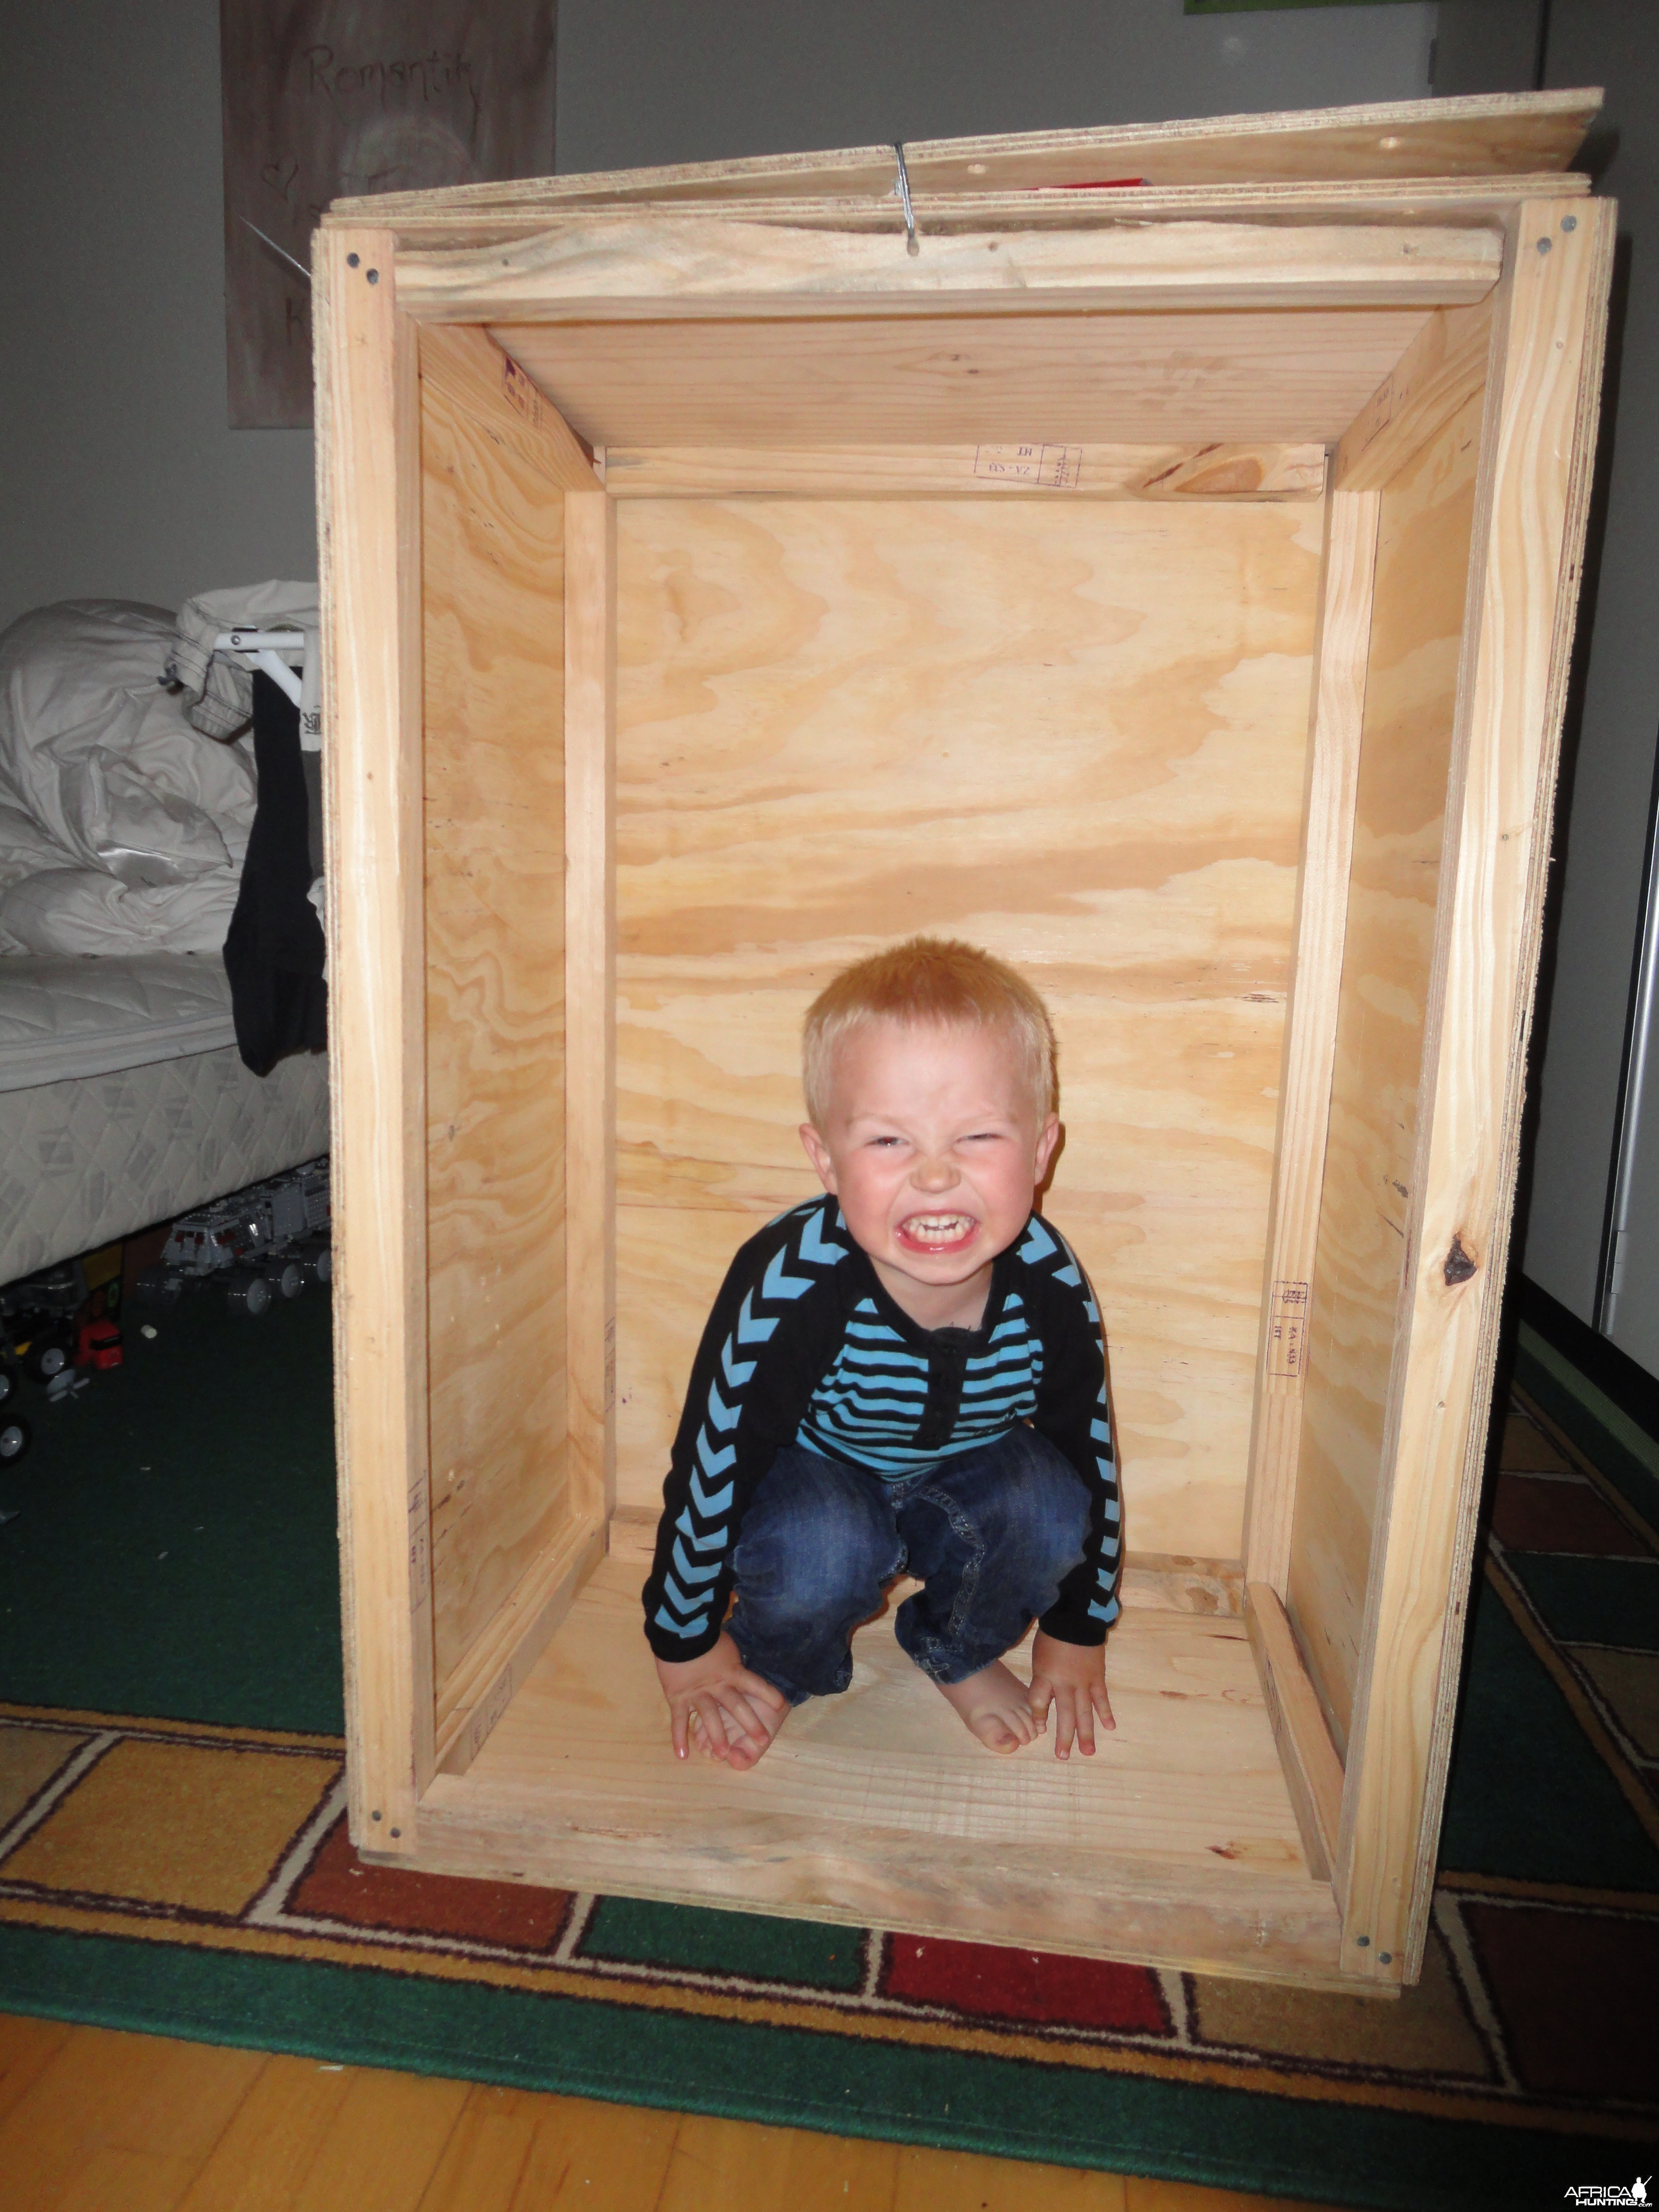 My granson in a trophy crate